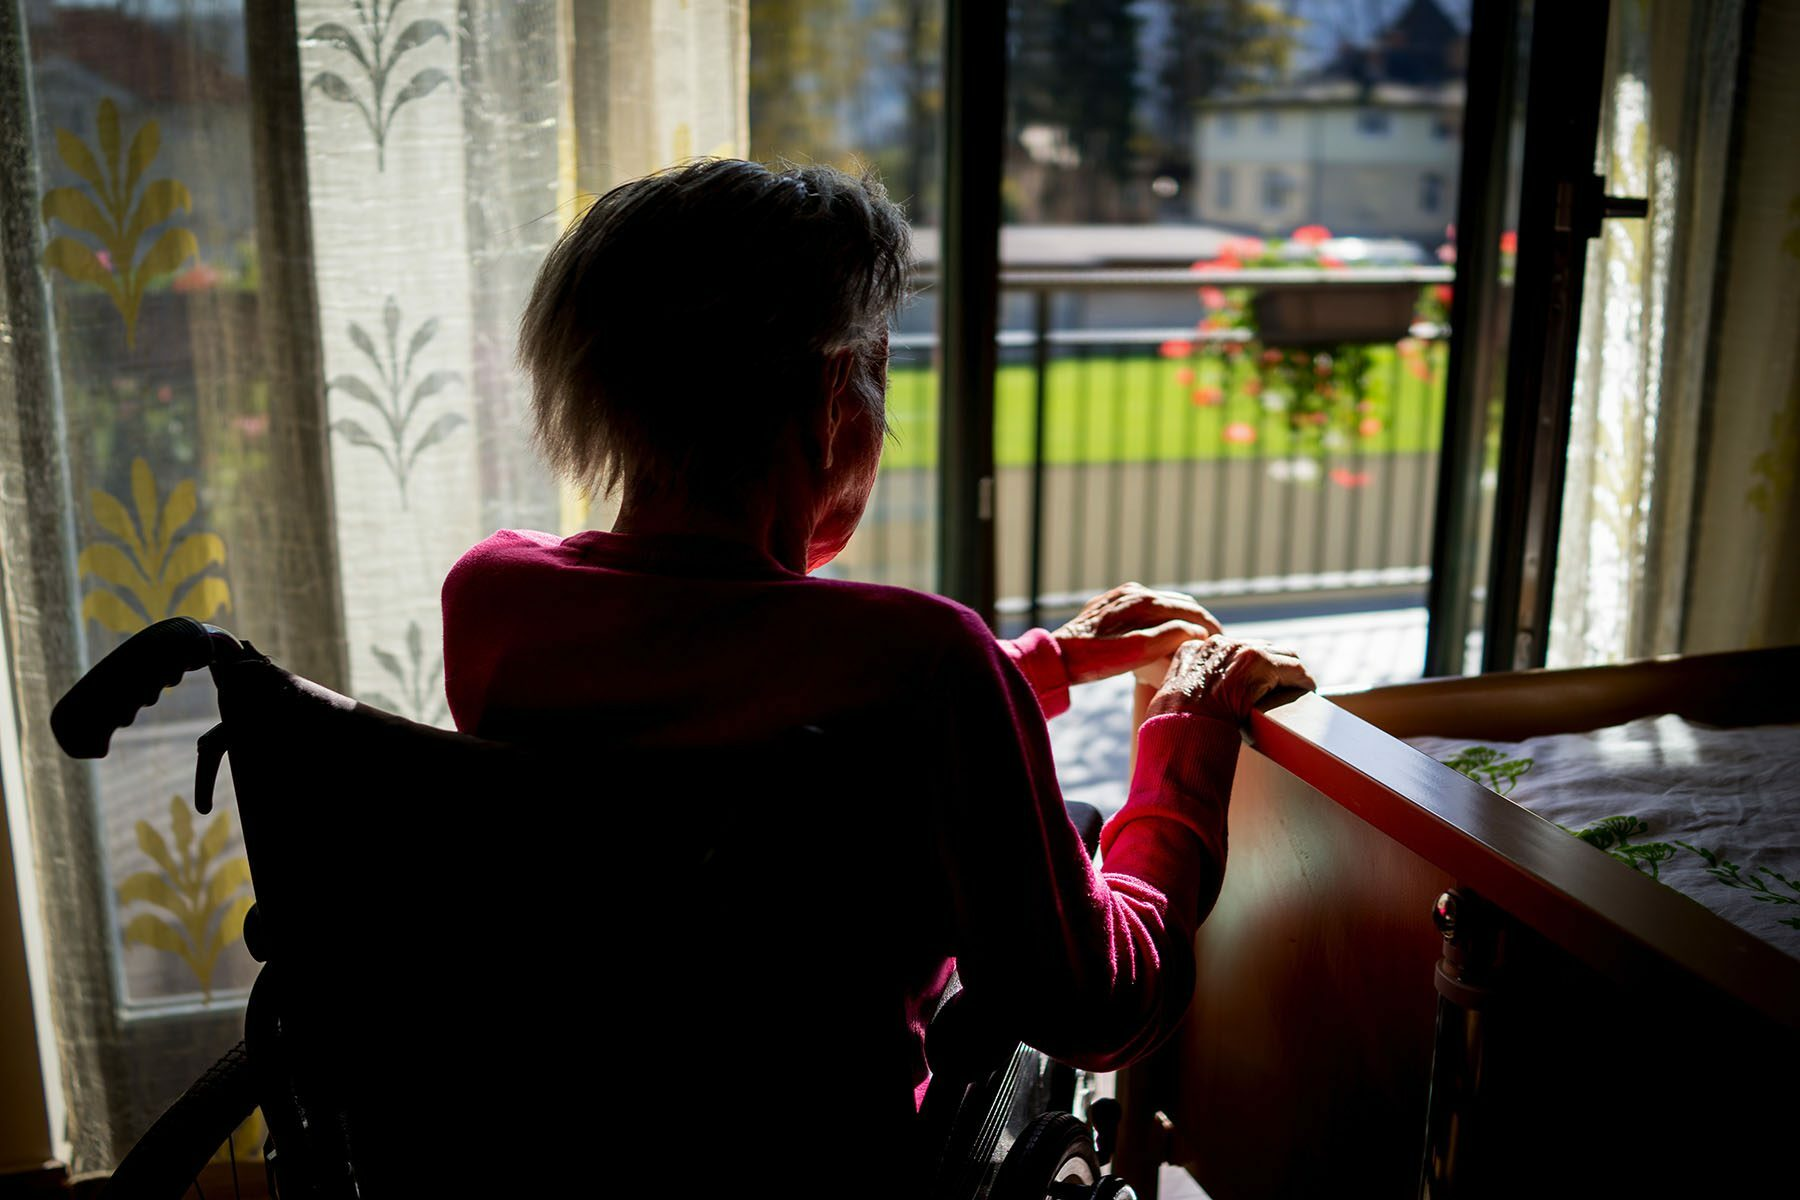 An older person in a wheelchair looks out a glass door. Their face is obscured while the sun shines on their hands.